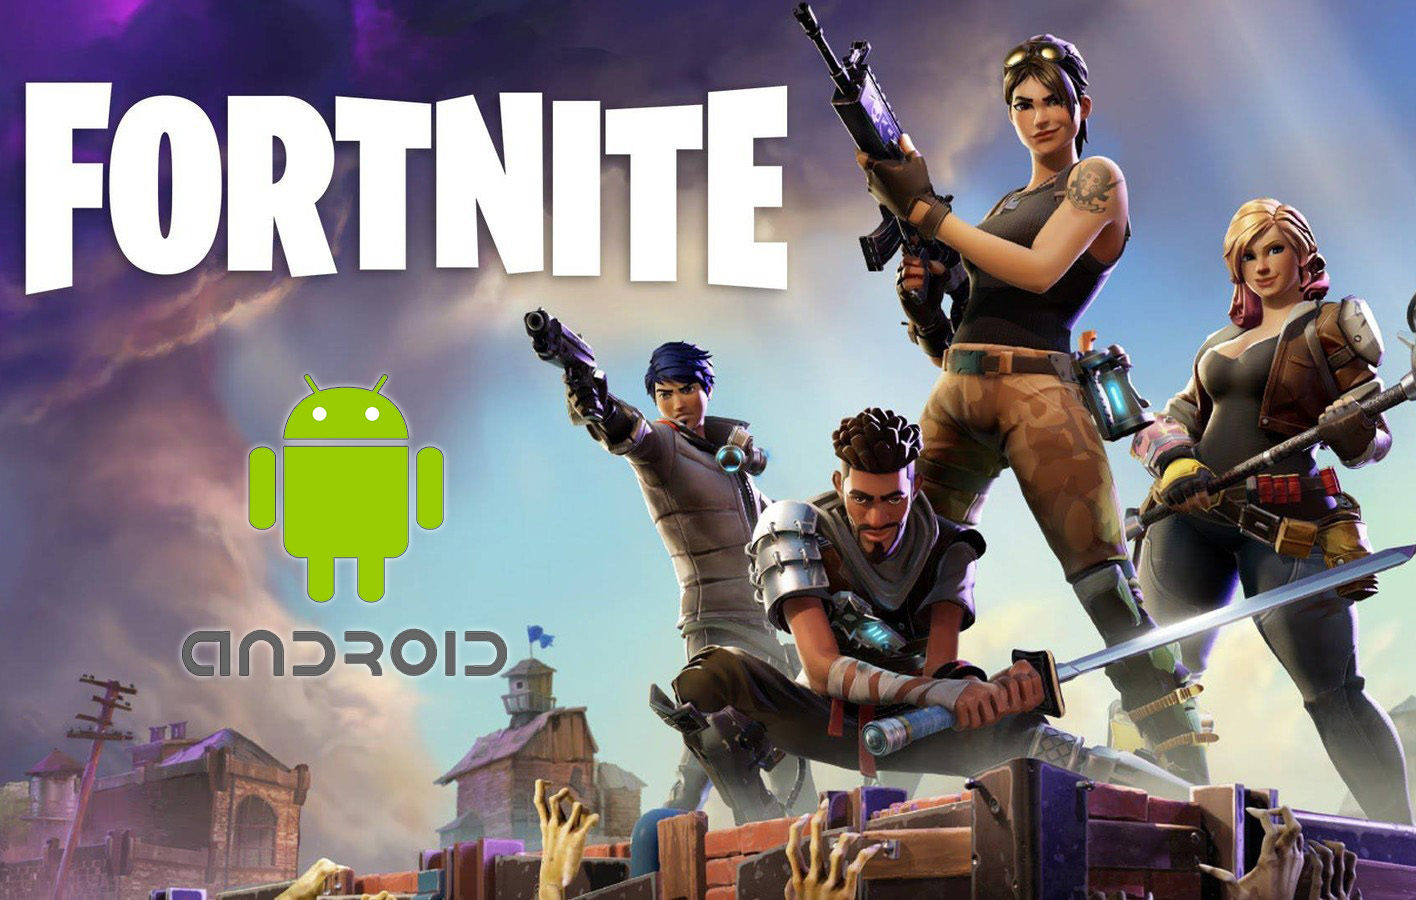 Se filtran los celulares compatibles con Fortnite Battle Royale en Android